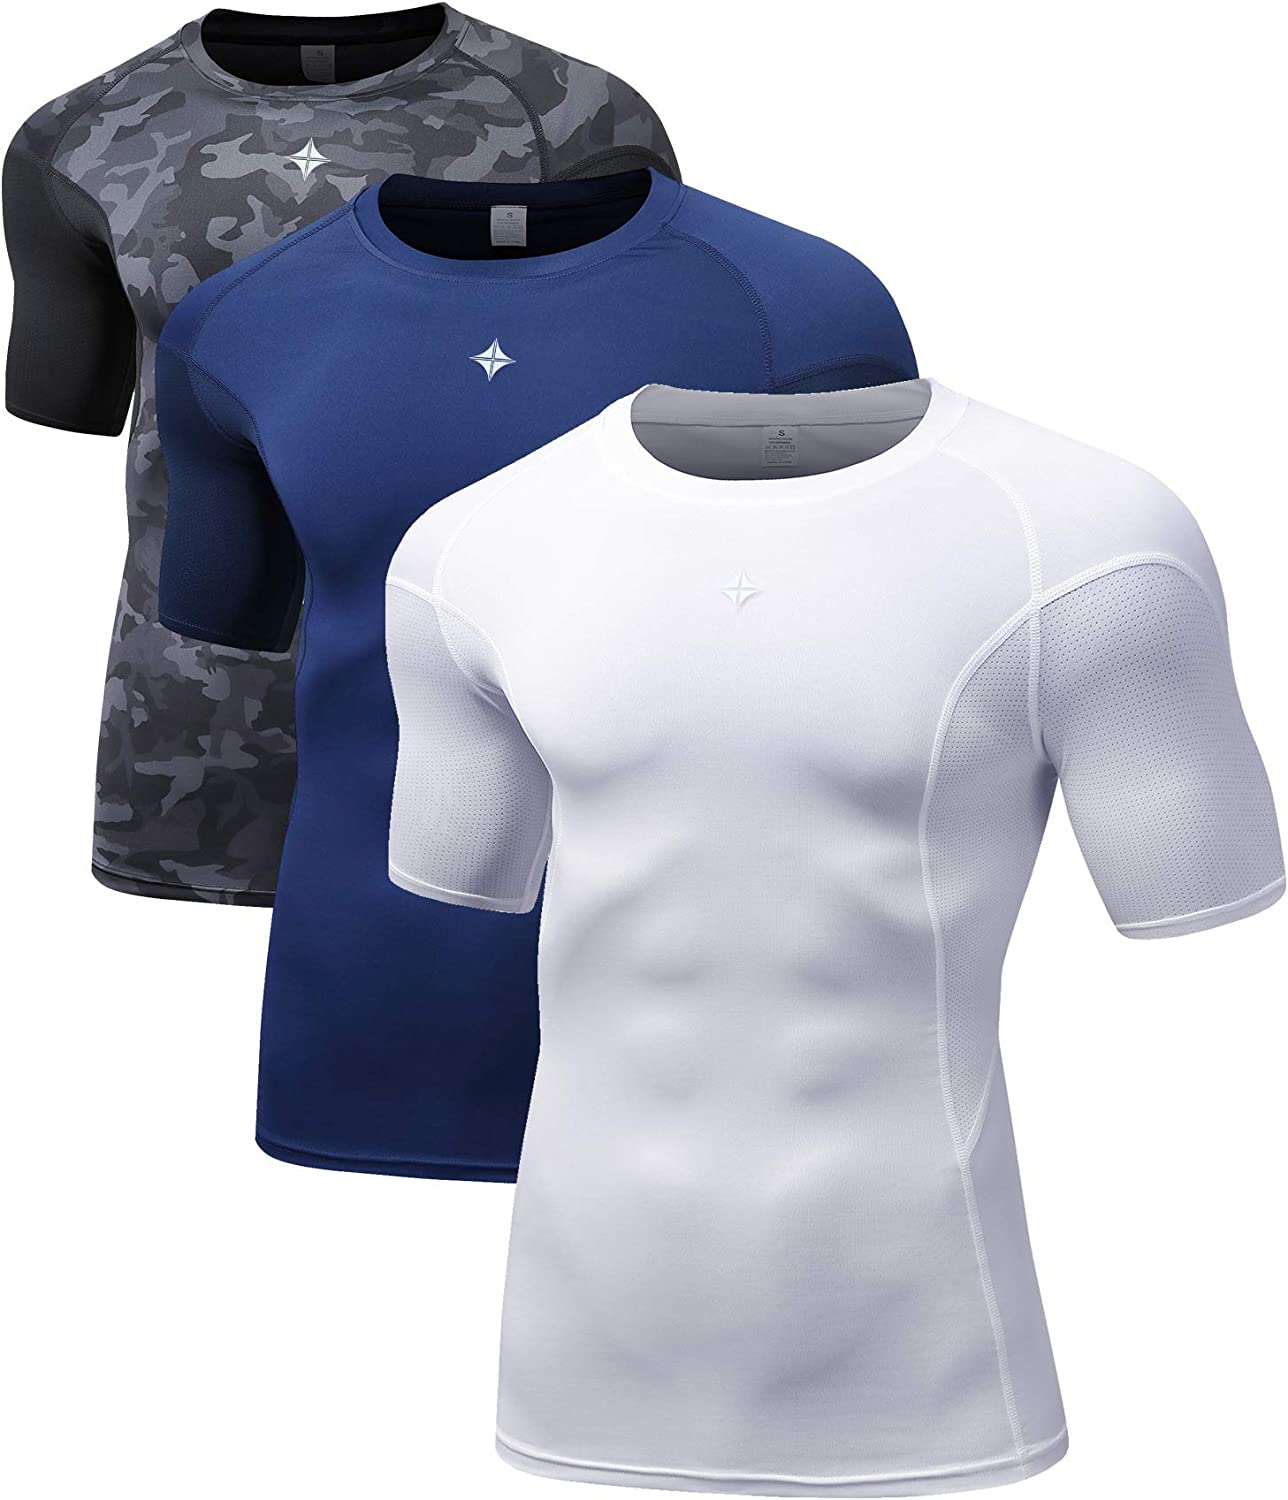 Milin Naco Minneapolis Mall Men's Short NEW before selling ☆ Sleeve Cool Dry Compression T-Shirt Base